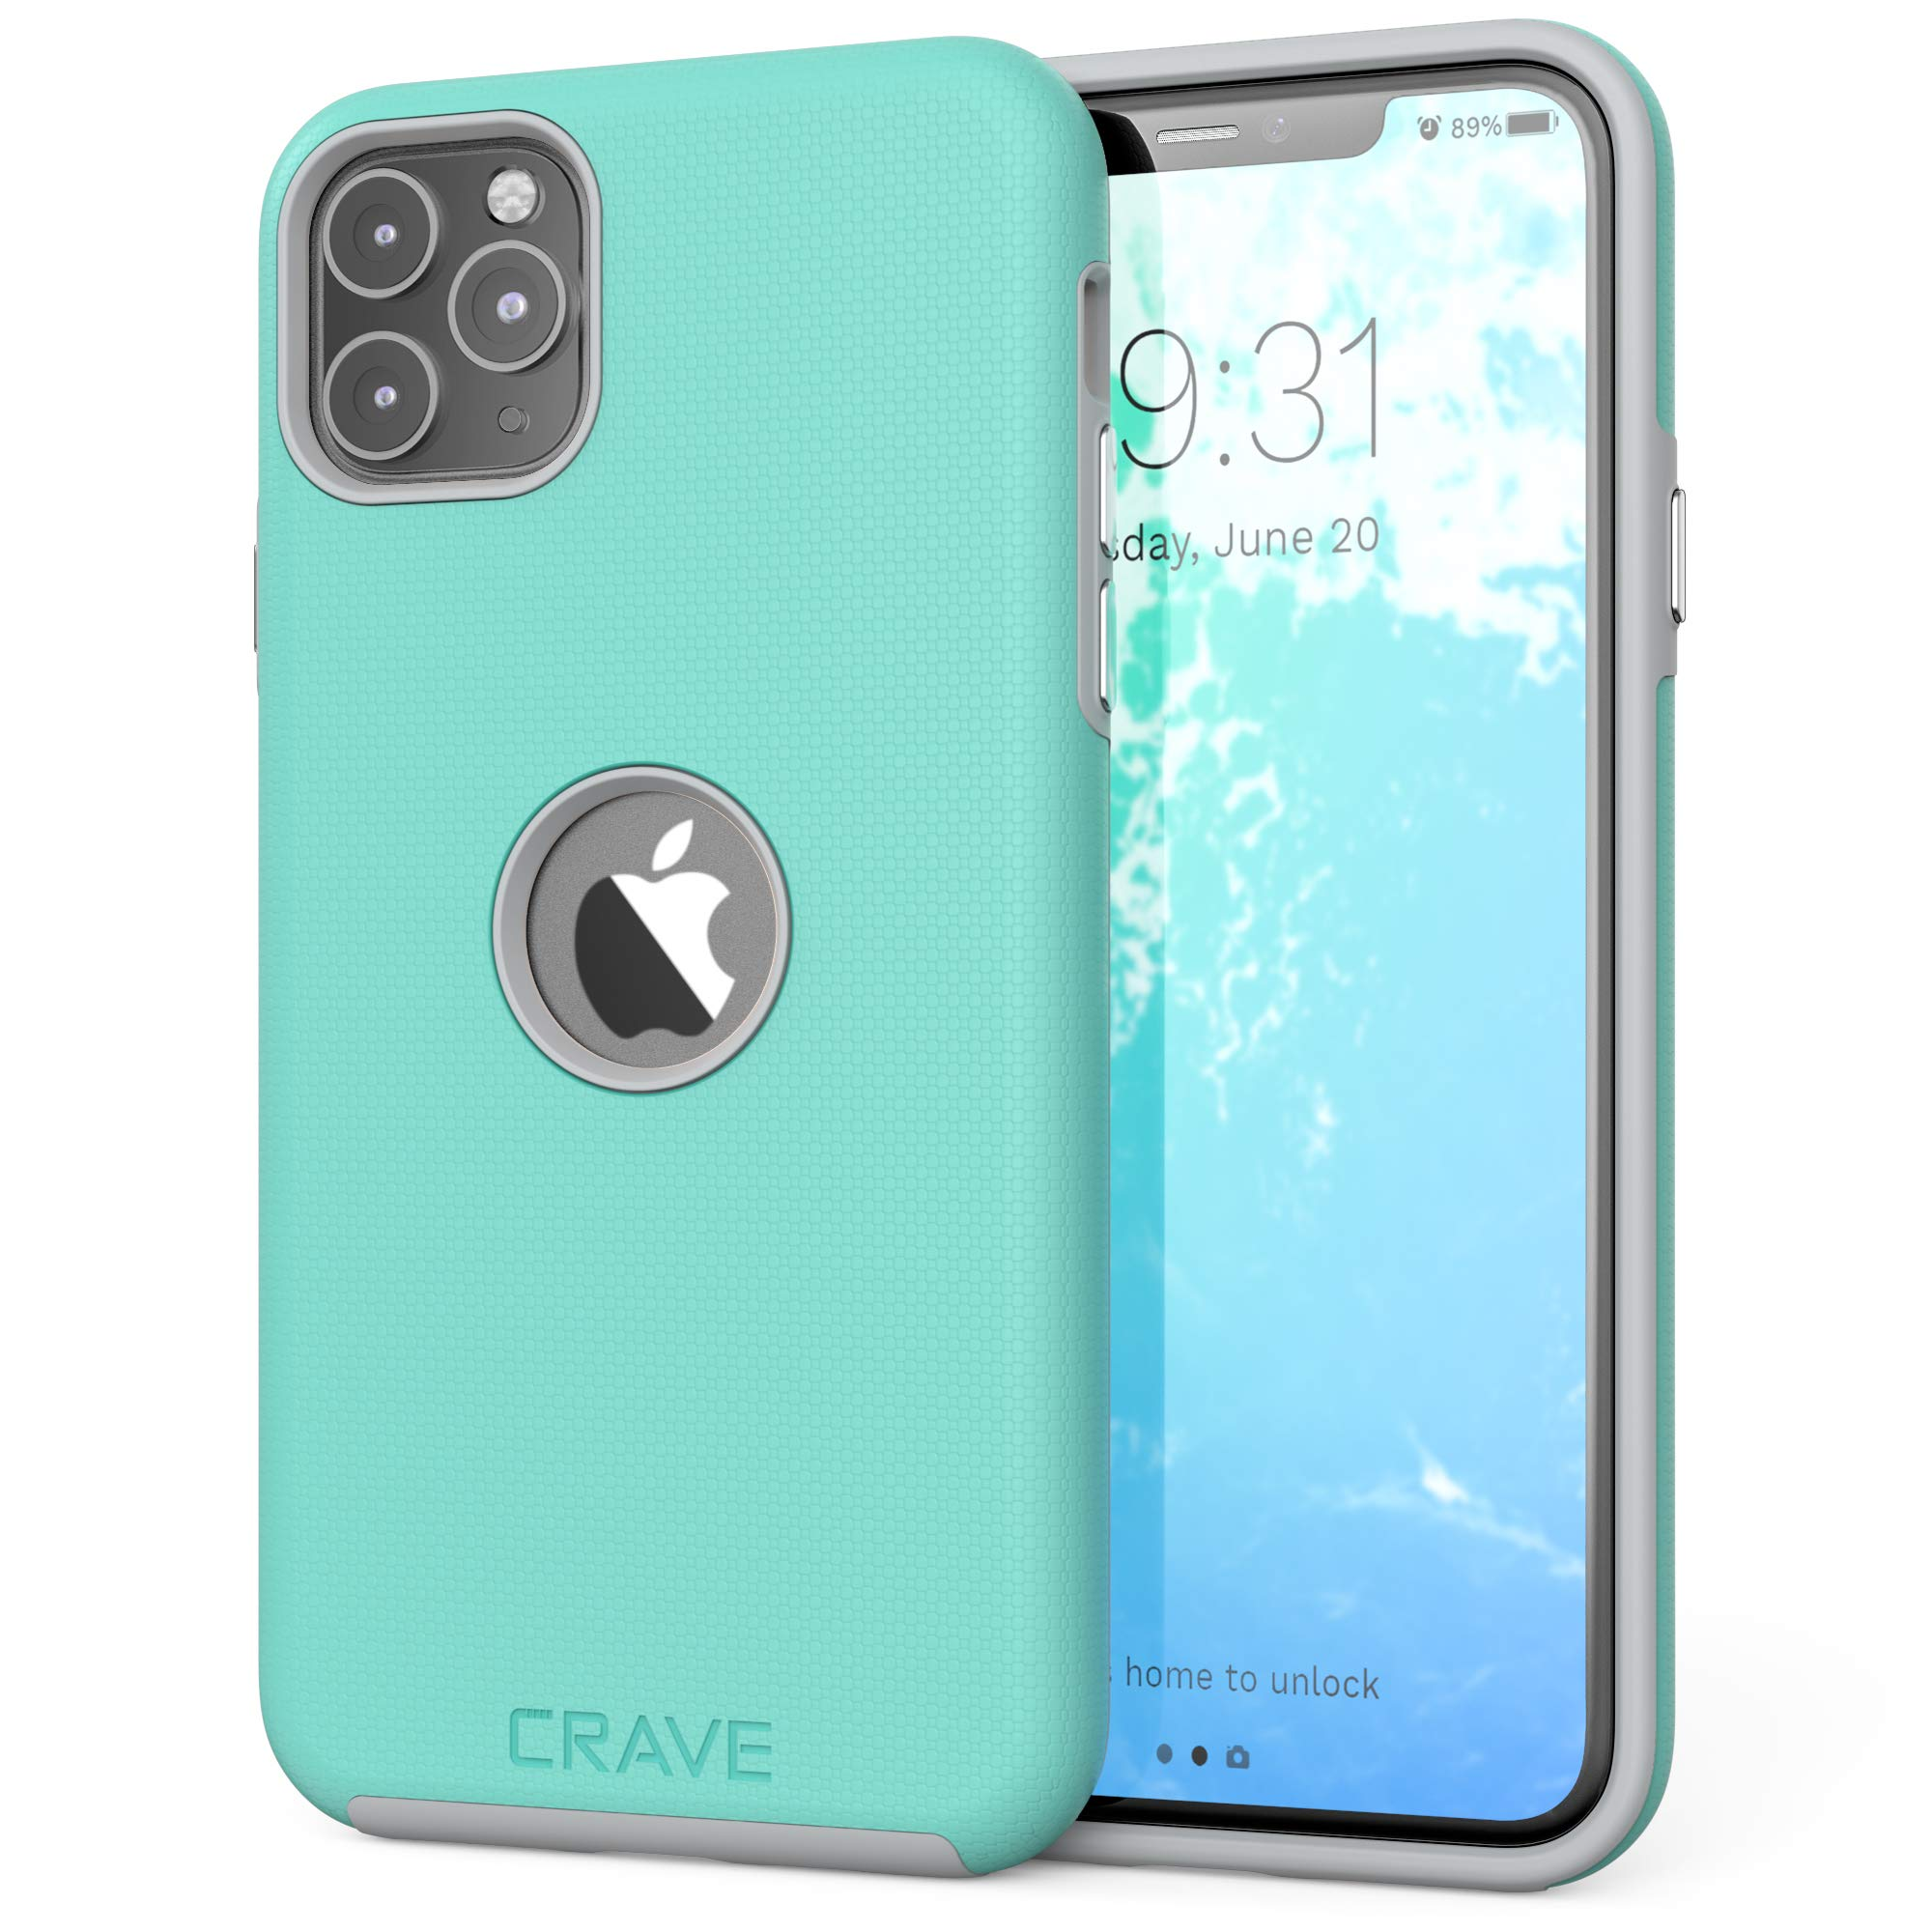 Crave iPhone 11 Pro Max Case, Dual Guard Protection Series Case for iPhone 11 Pro Max - Mint/Grey